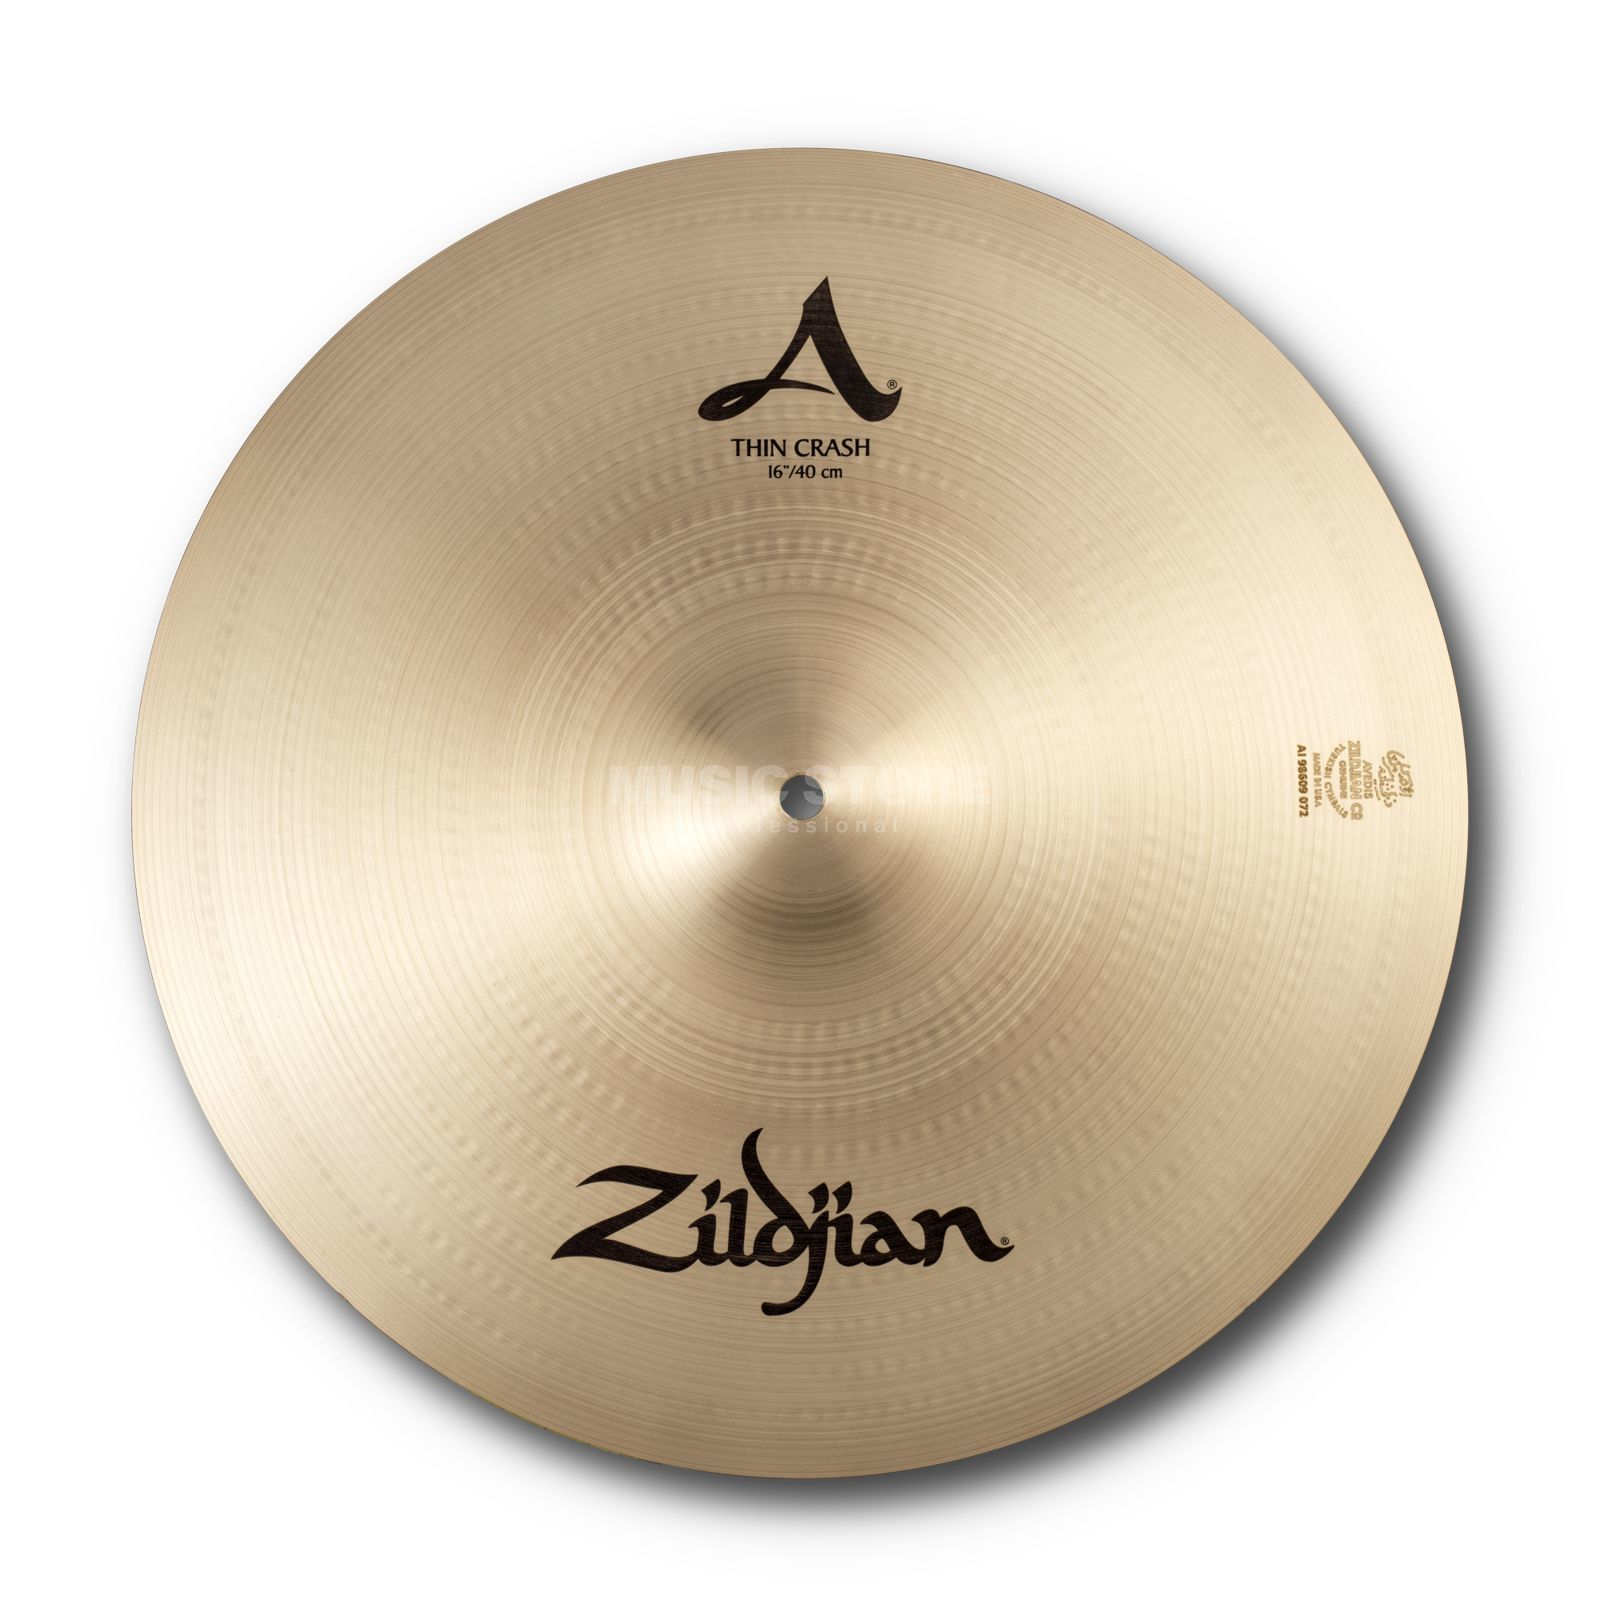 "Zildjian A' Zildjian Thin Crash 16"", Traditional Finish Изображение товара"